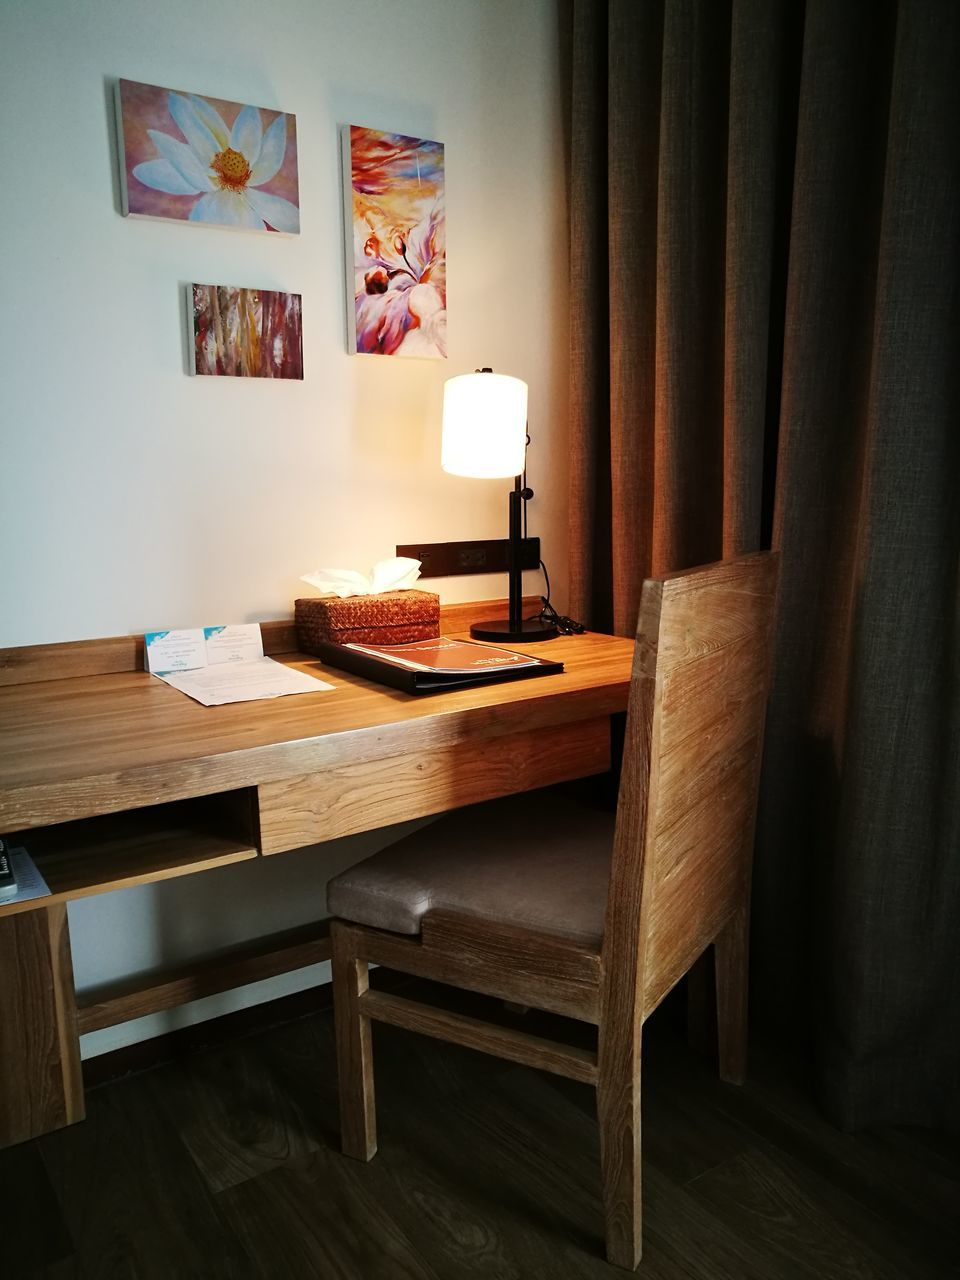 table, indoors, wood - material, home interior, no people, chair, desk, home showcase interior, day